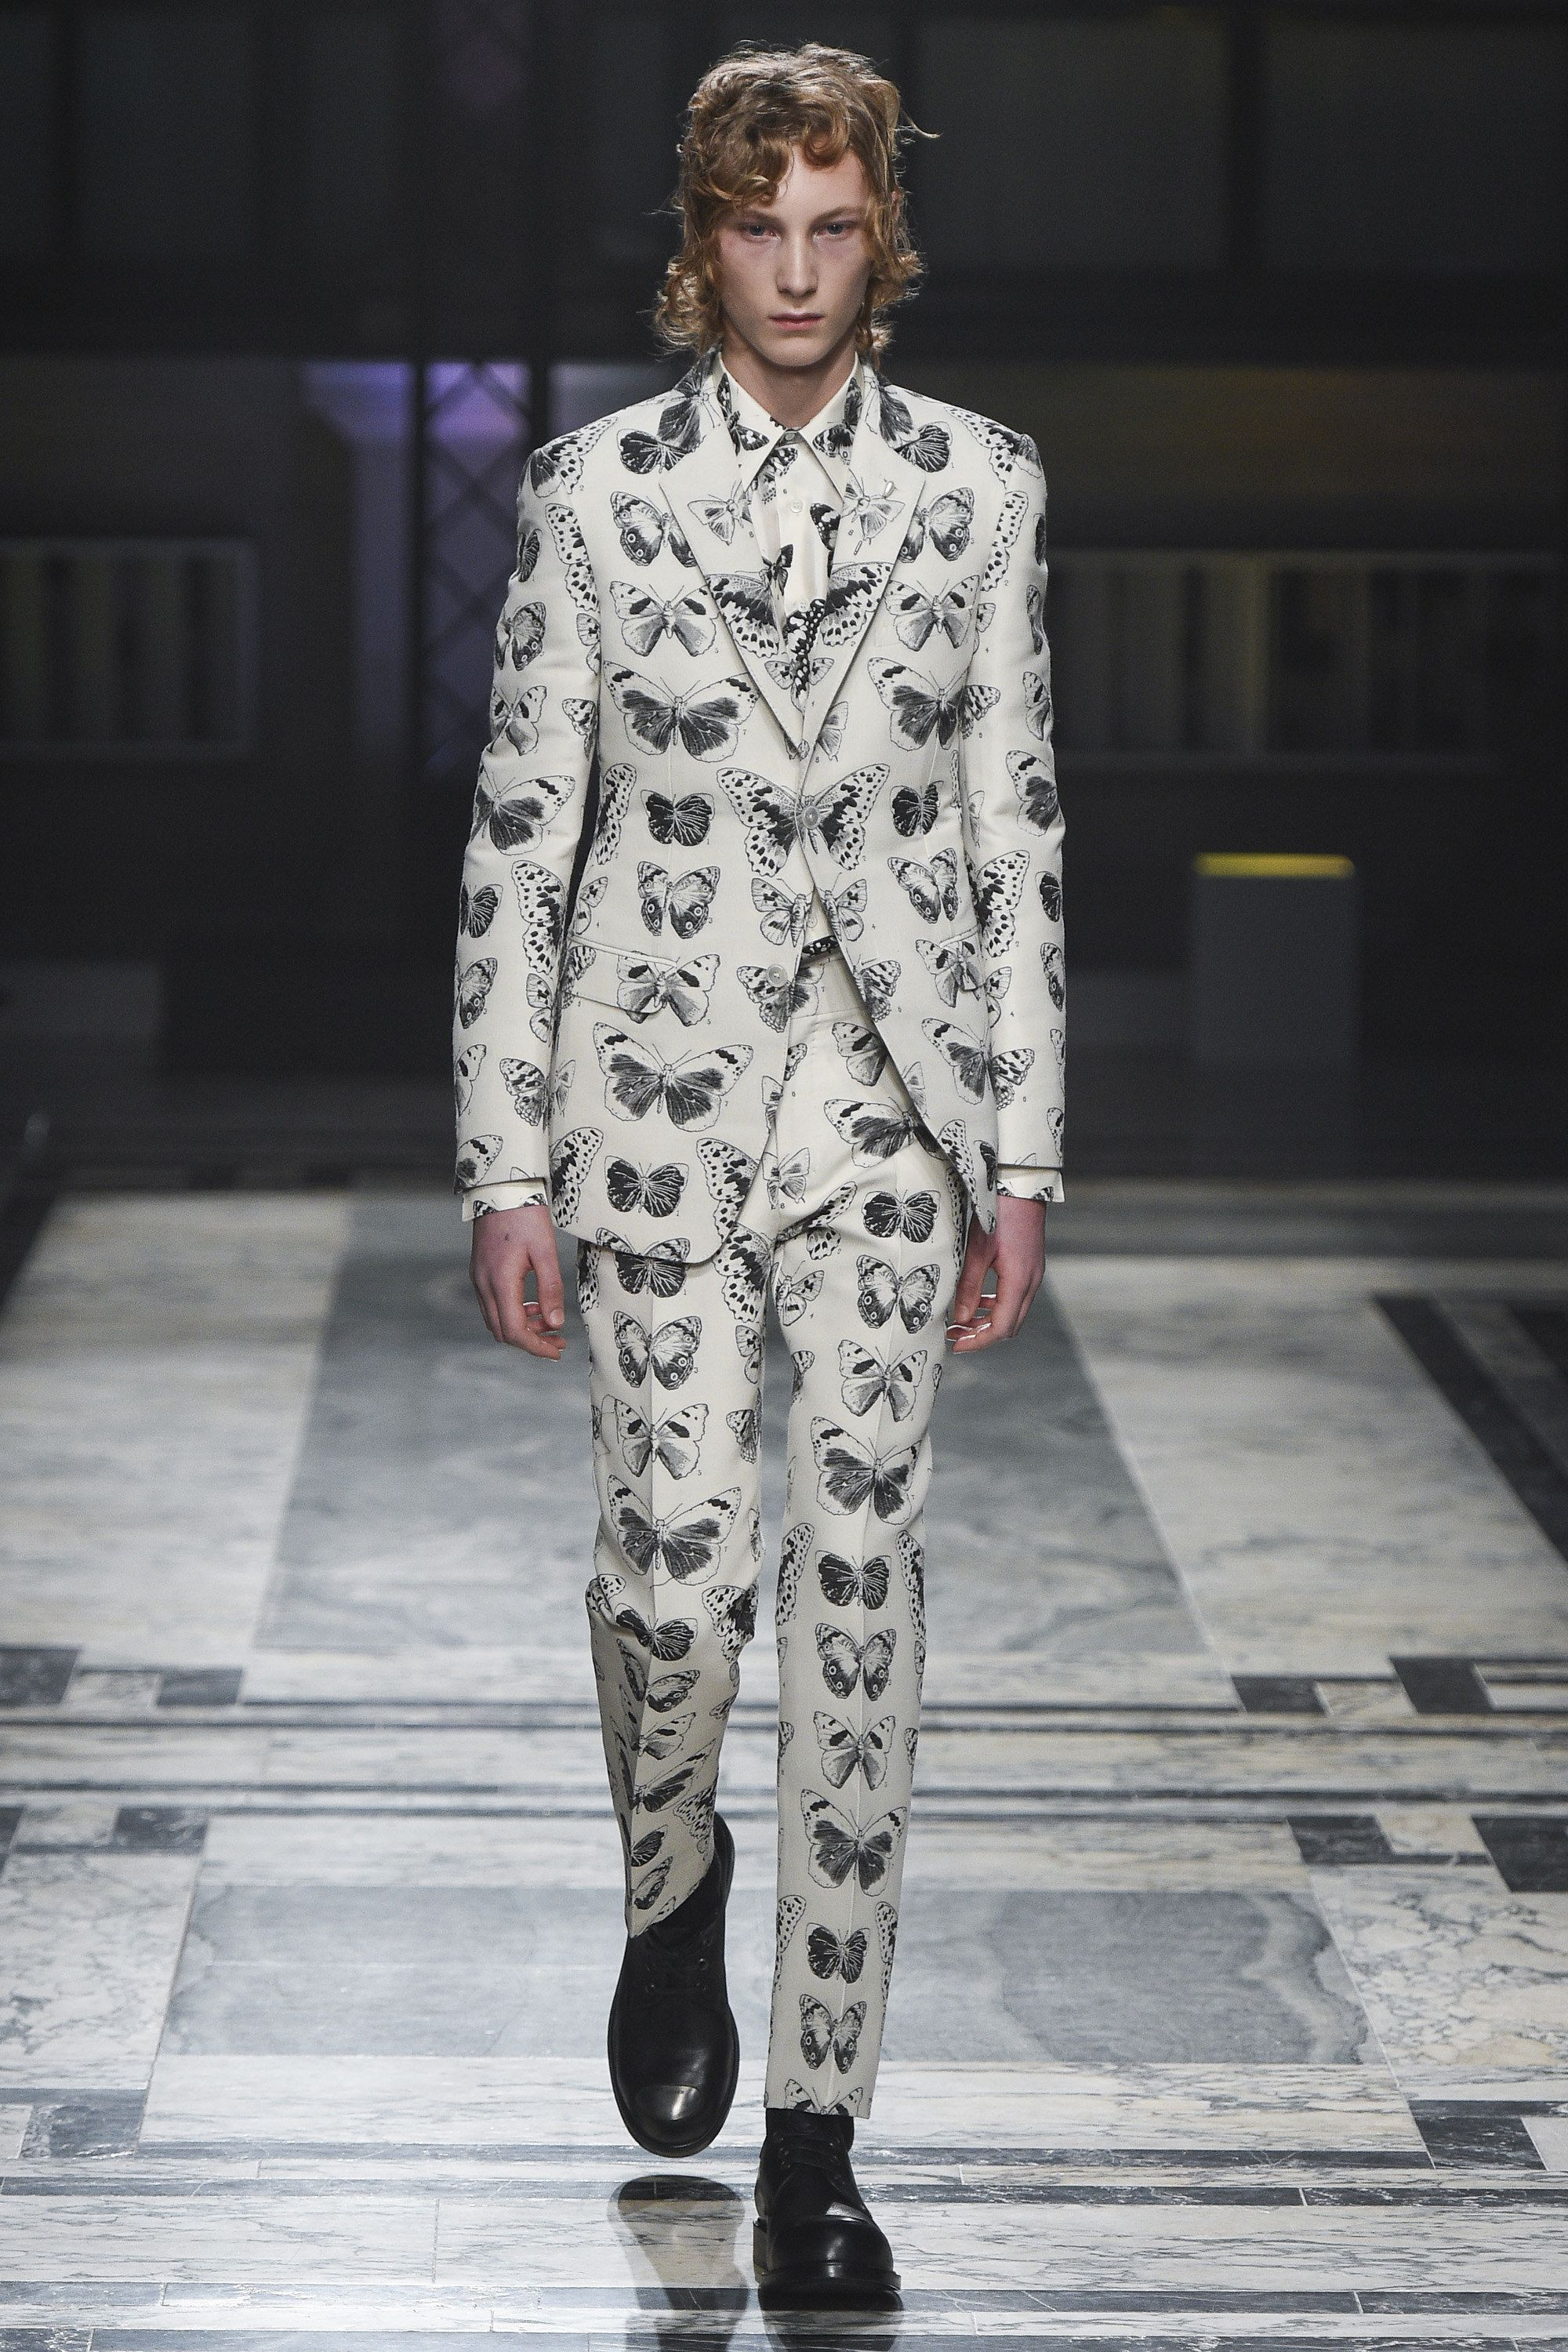 24cd9929316c27 Alexander McQueen Fall 2016 Menswear Fashion Show   Suit   Menswear ...